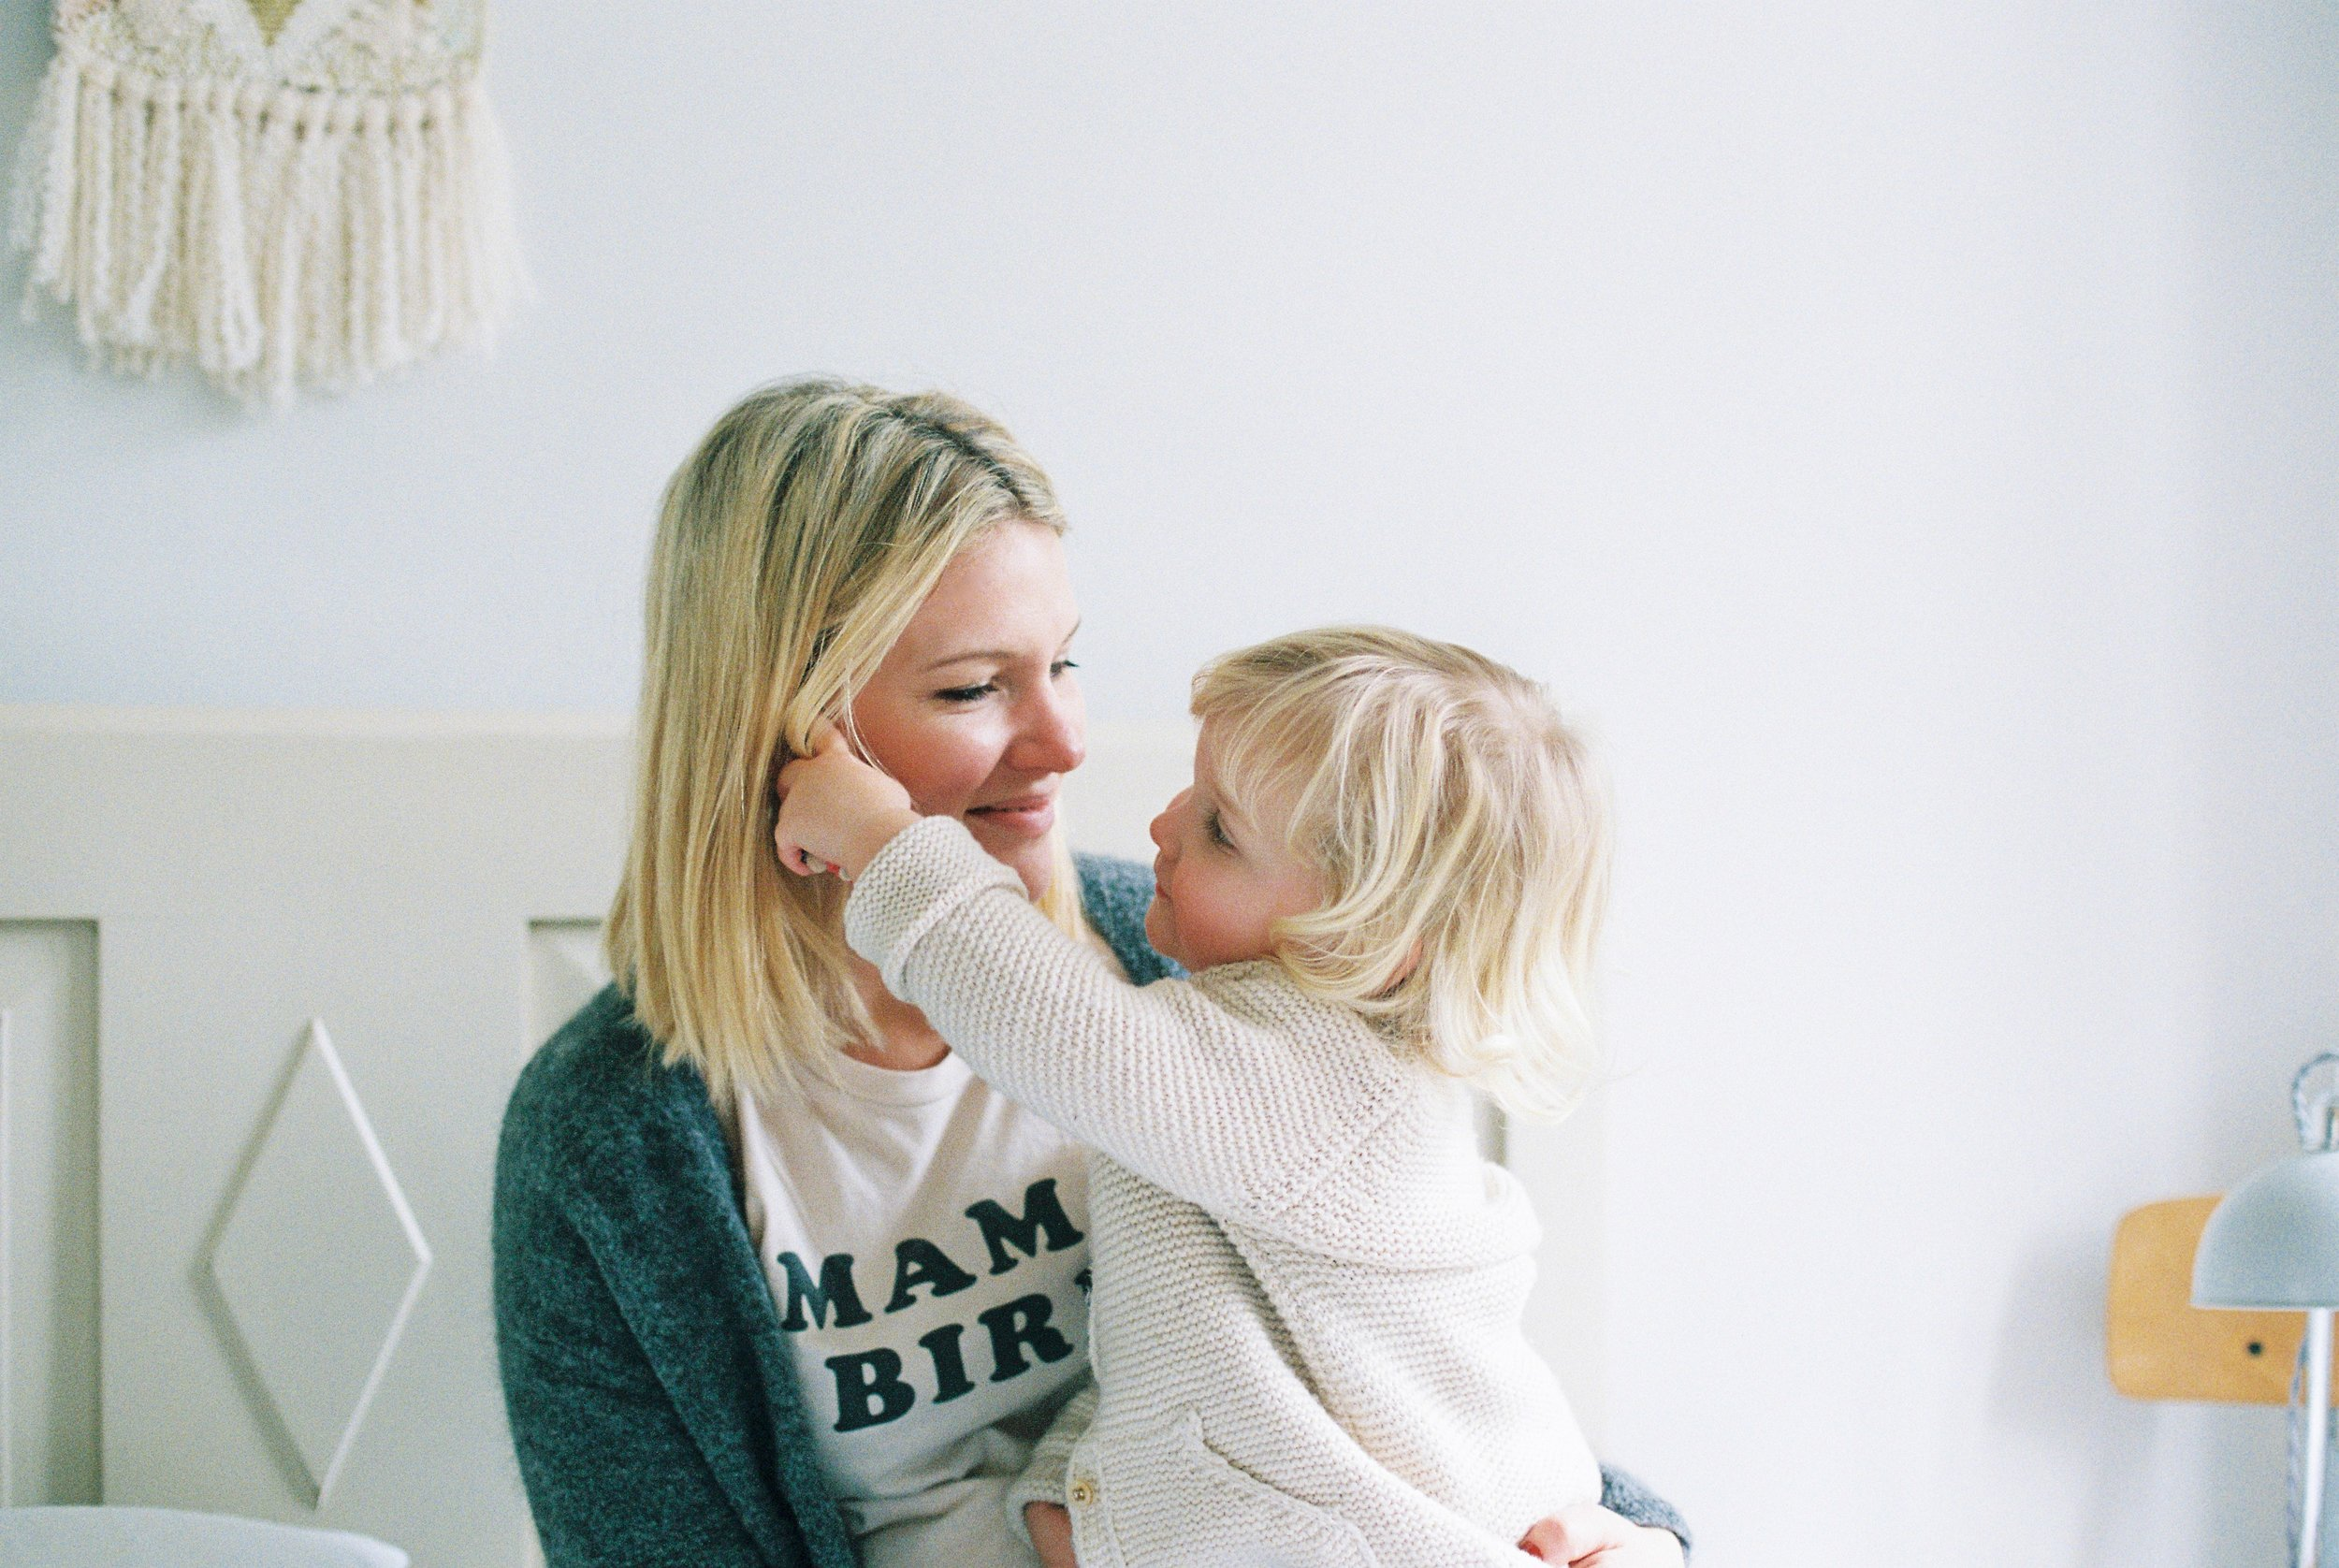 london_surrey_guildford_family_photographer_natural_light_emilywphotography.8.jpg